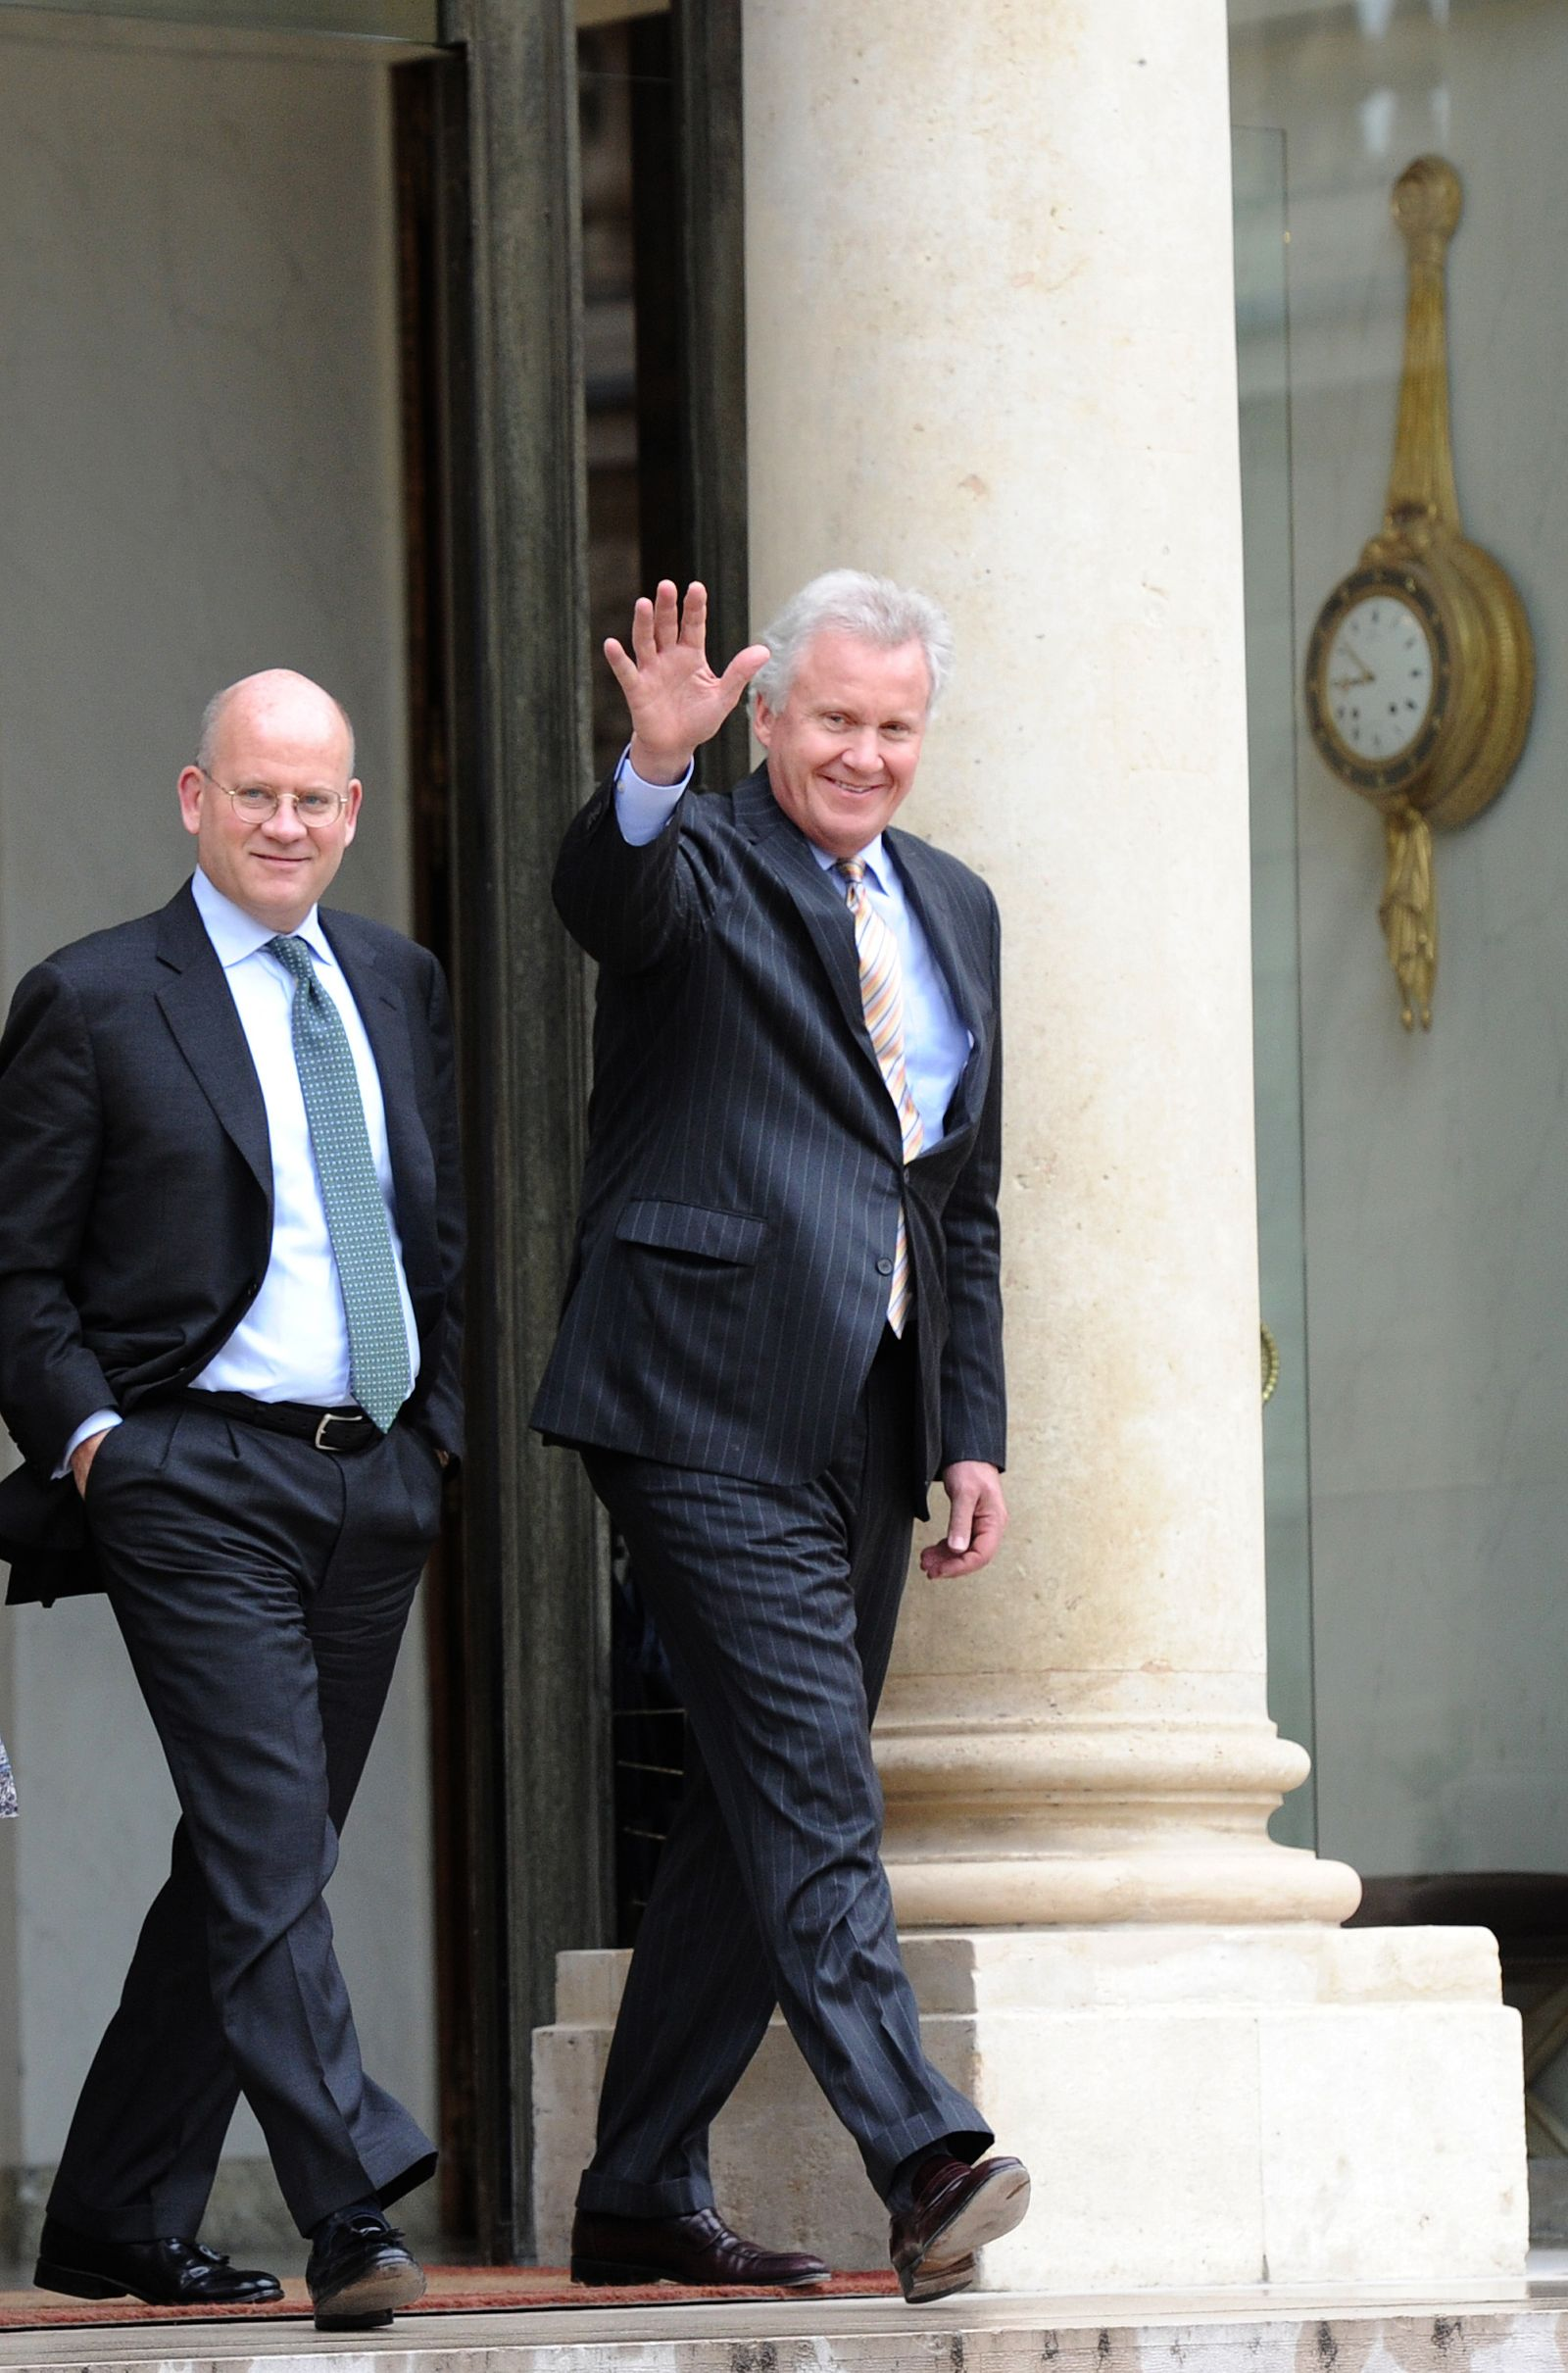 John Flannery (li) / Jeffrey Immelt (re)